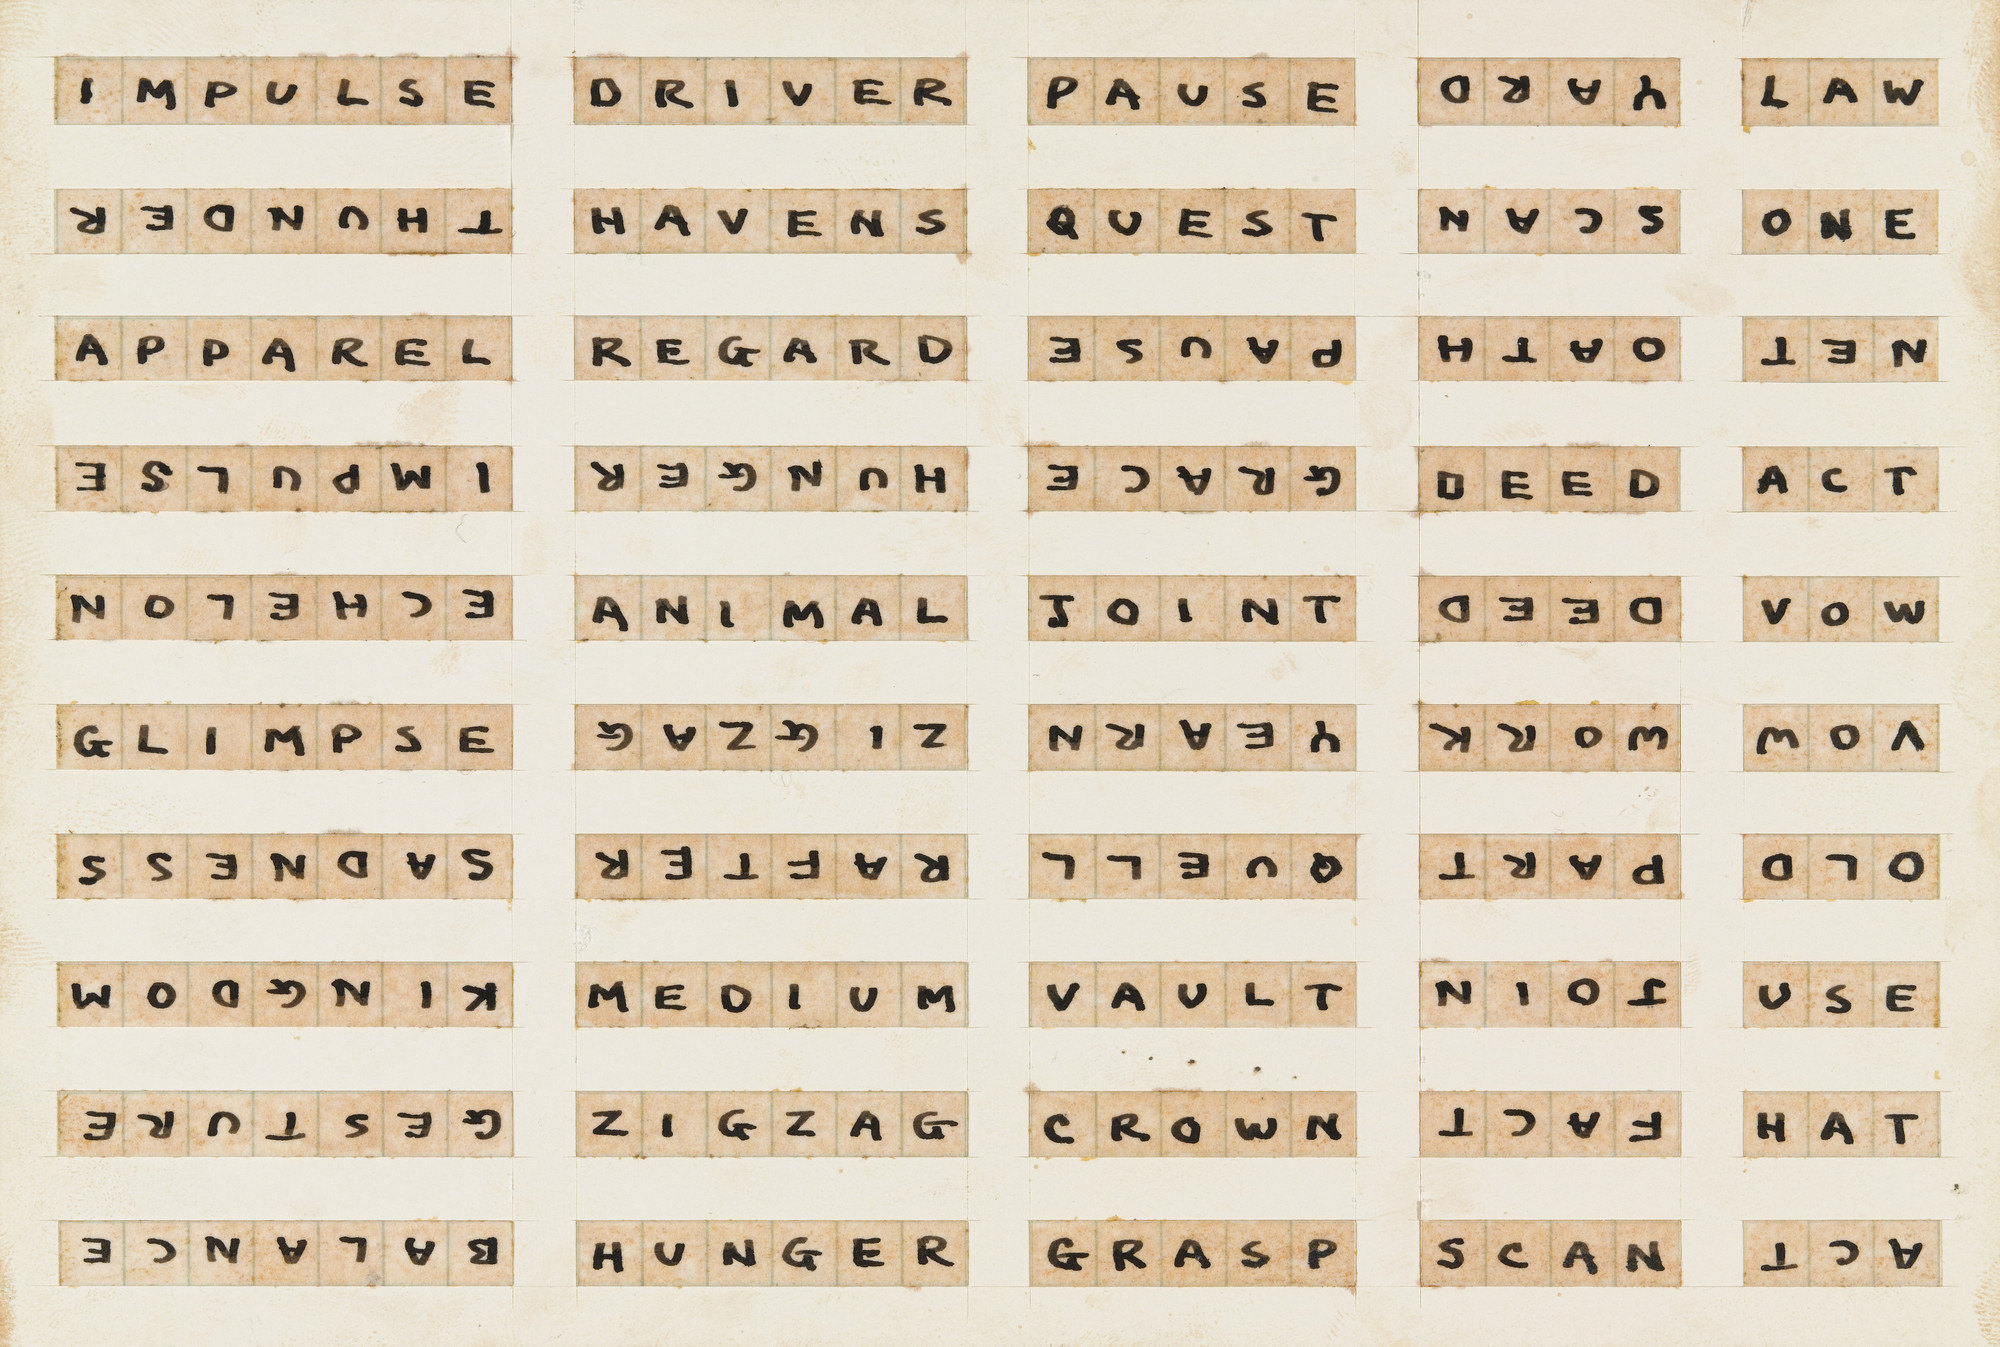 Carl Andre. Impulse Driver. (1965)